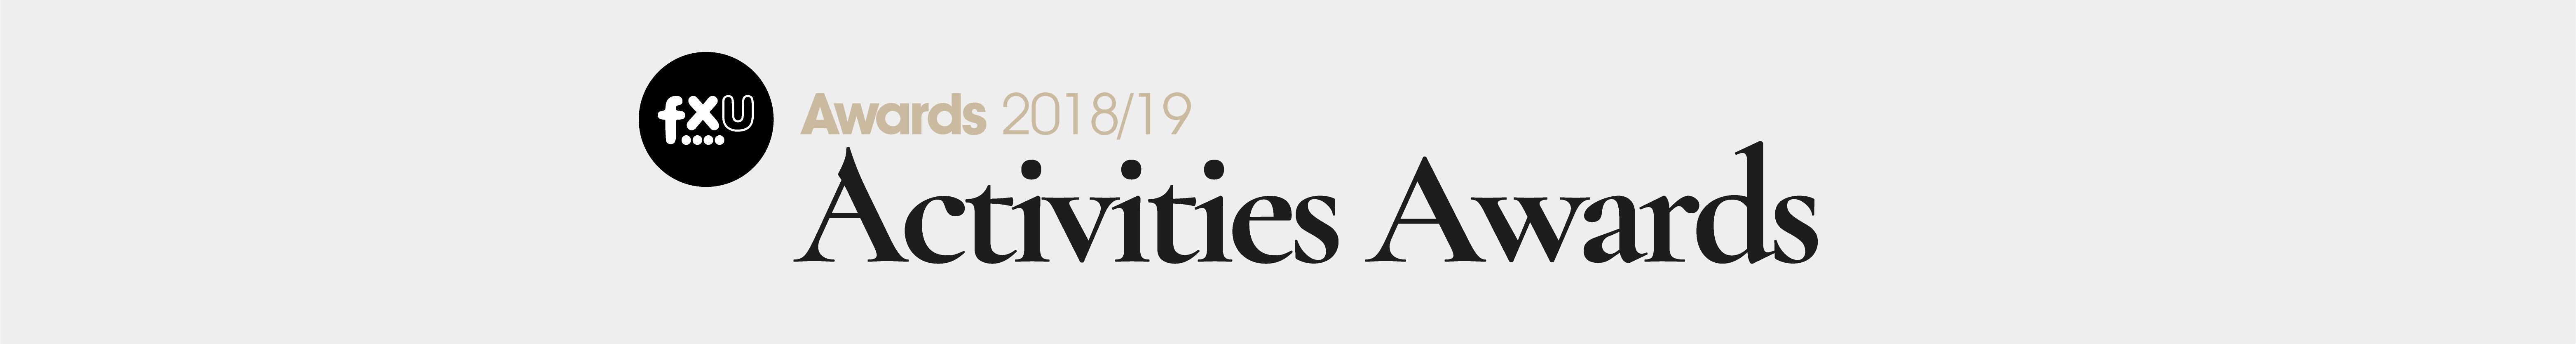 Activities Awards 2019